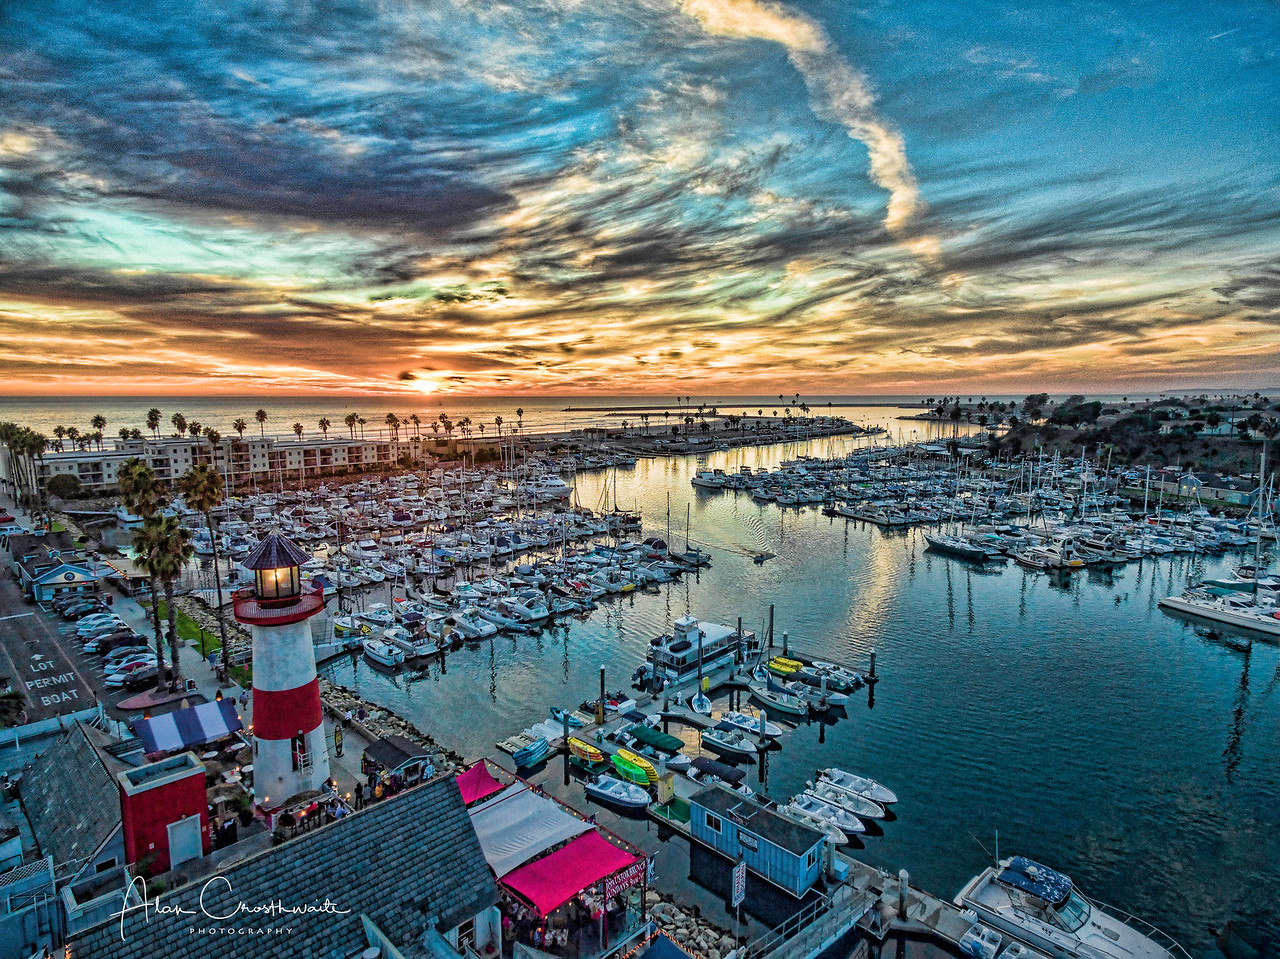 Sunset at the Oceanside Harbor